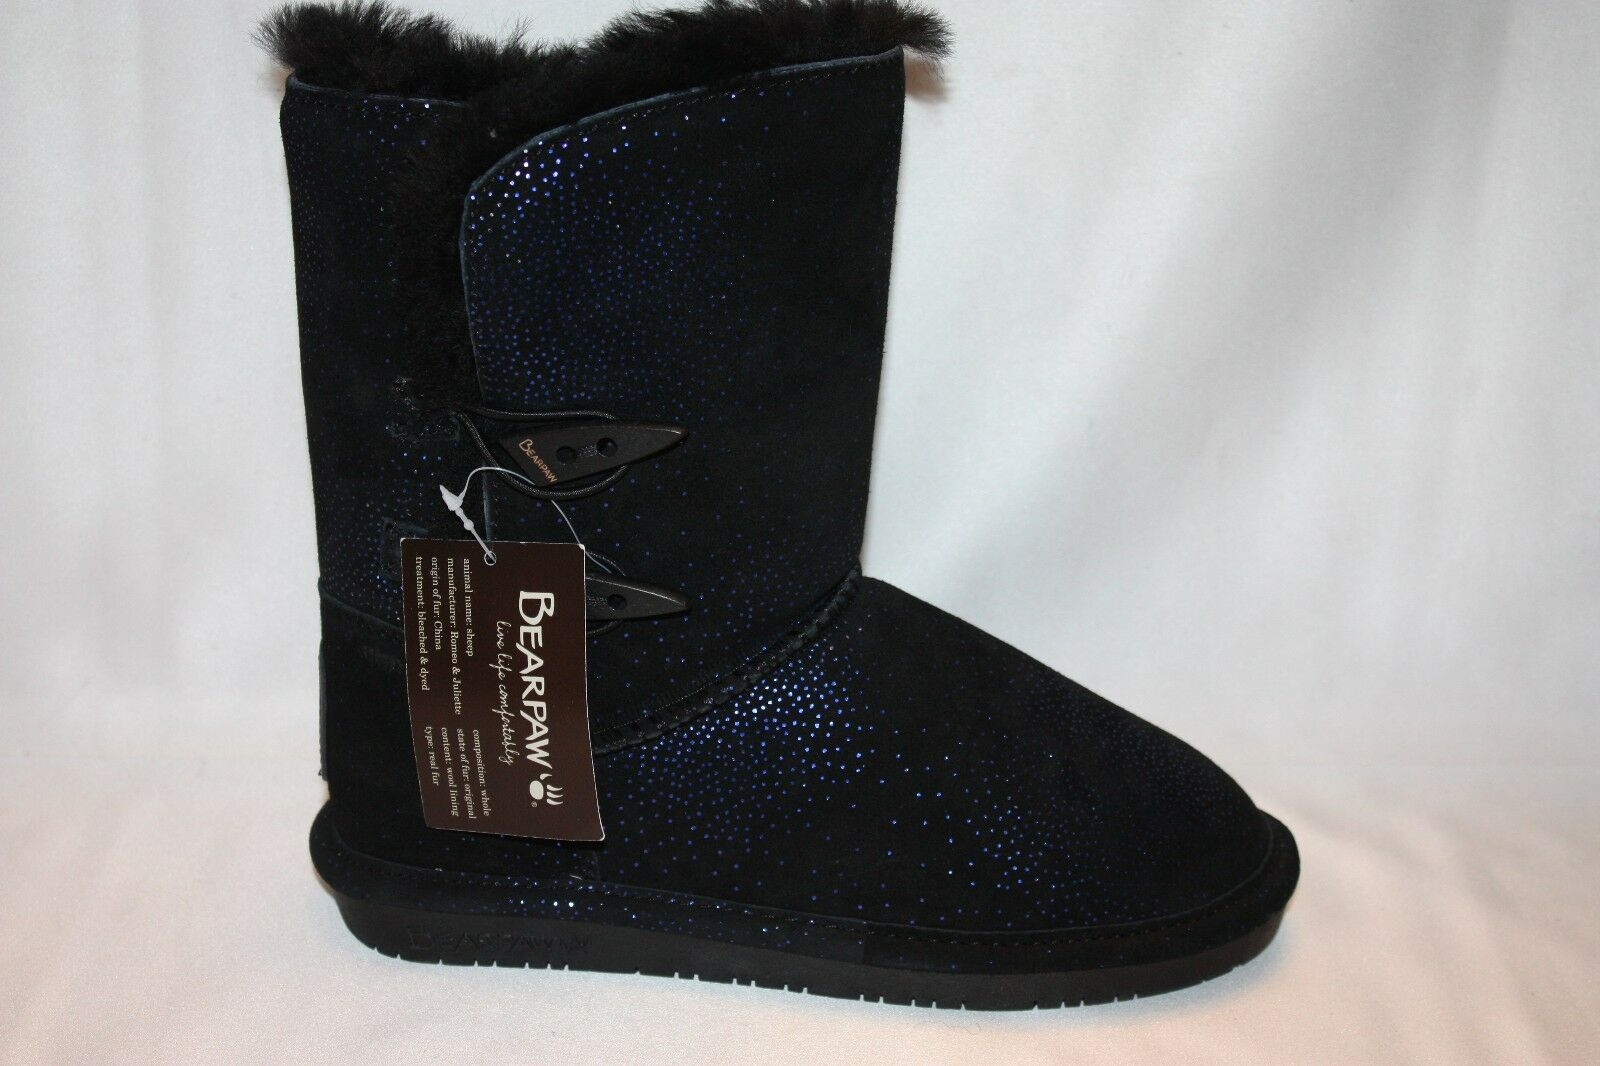 NEW NEW NEW BEARPAW Black Suede DIVA bluee Sparkle Sheepskin Shearling Short Boots Sz 5 7 7772a6